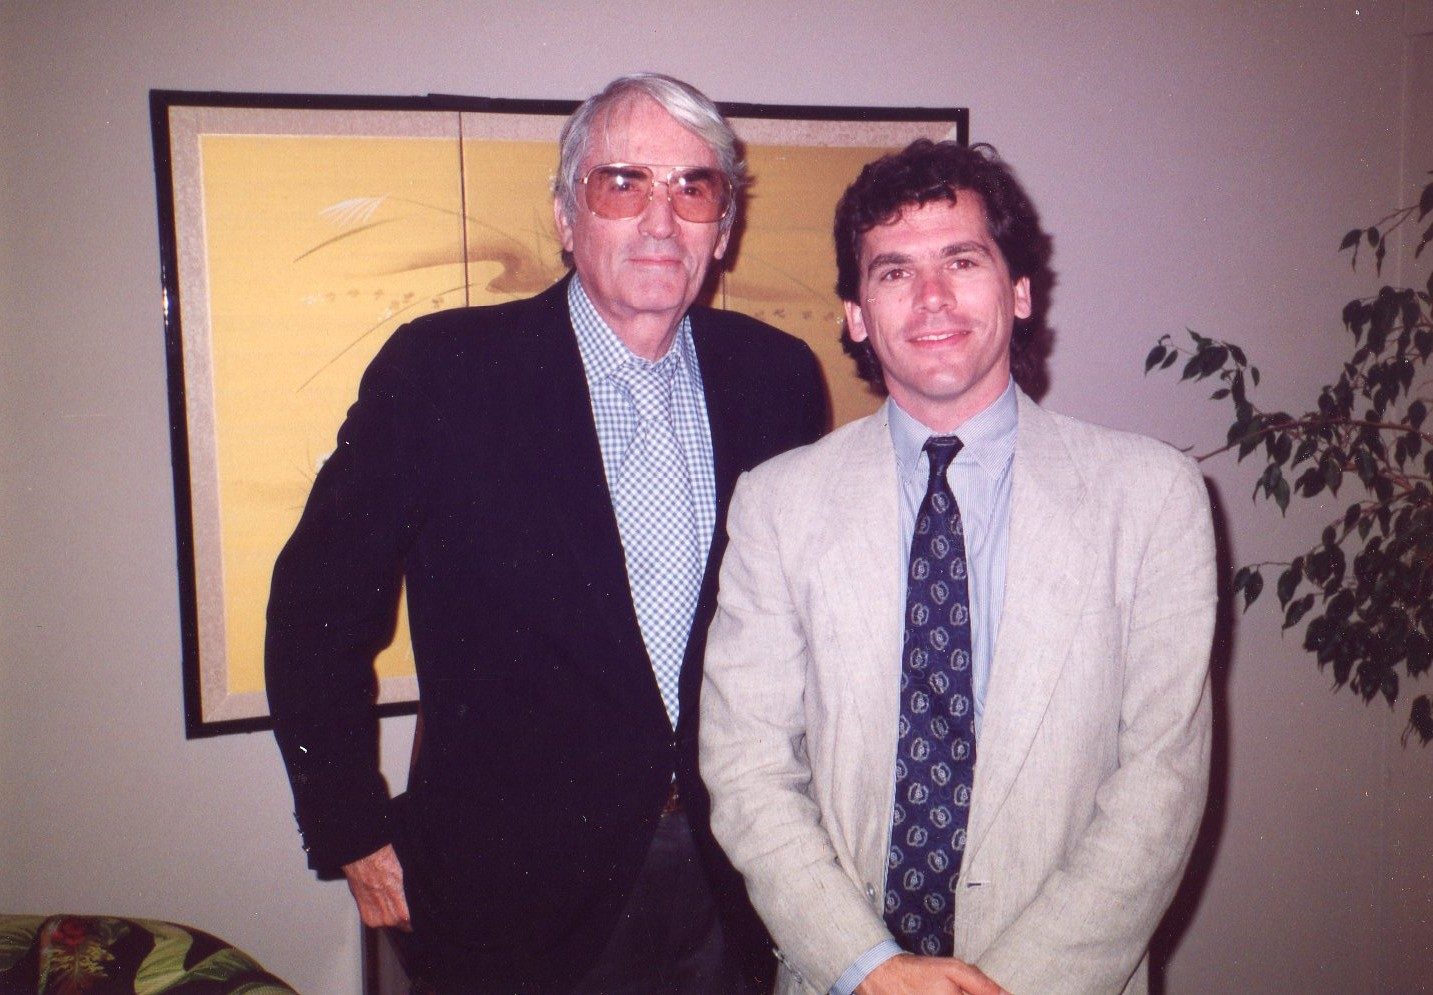 Gregory Peck and Edward Guthmann, 1989